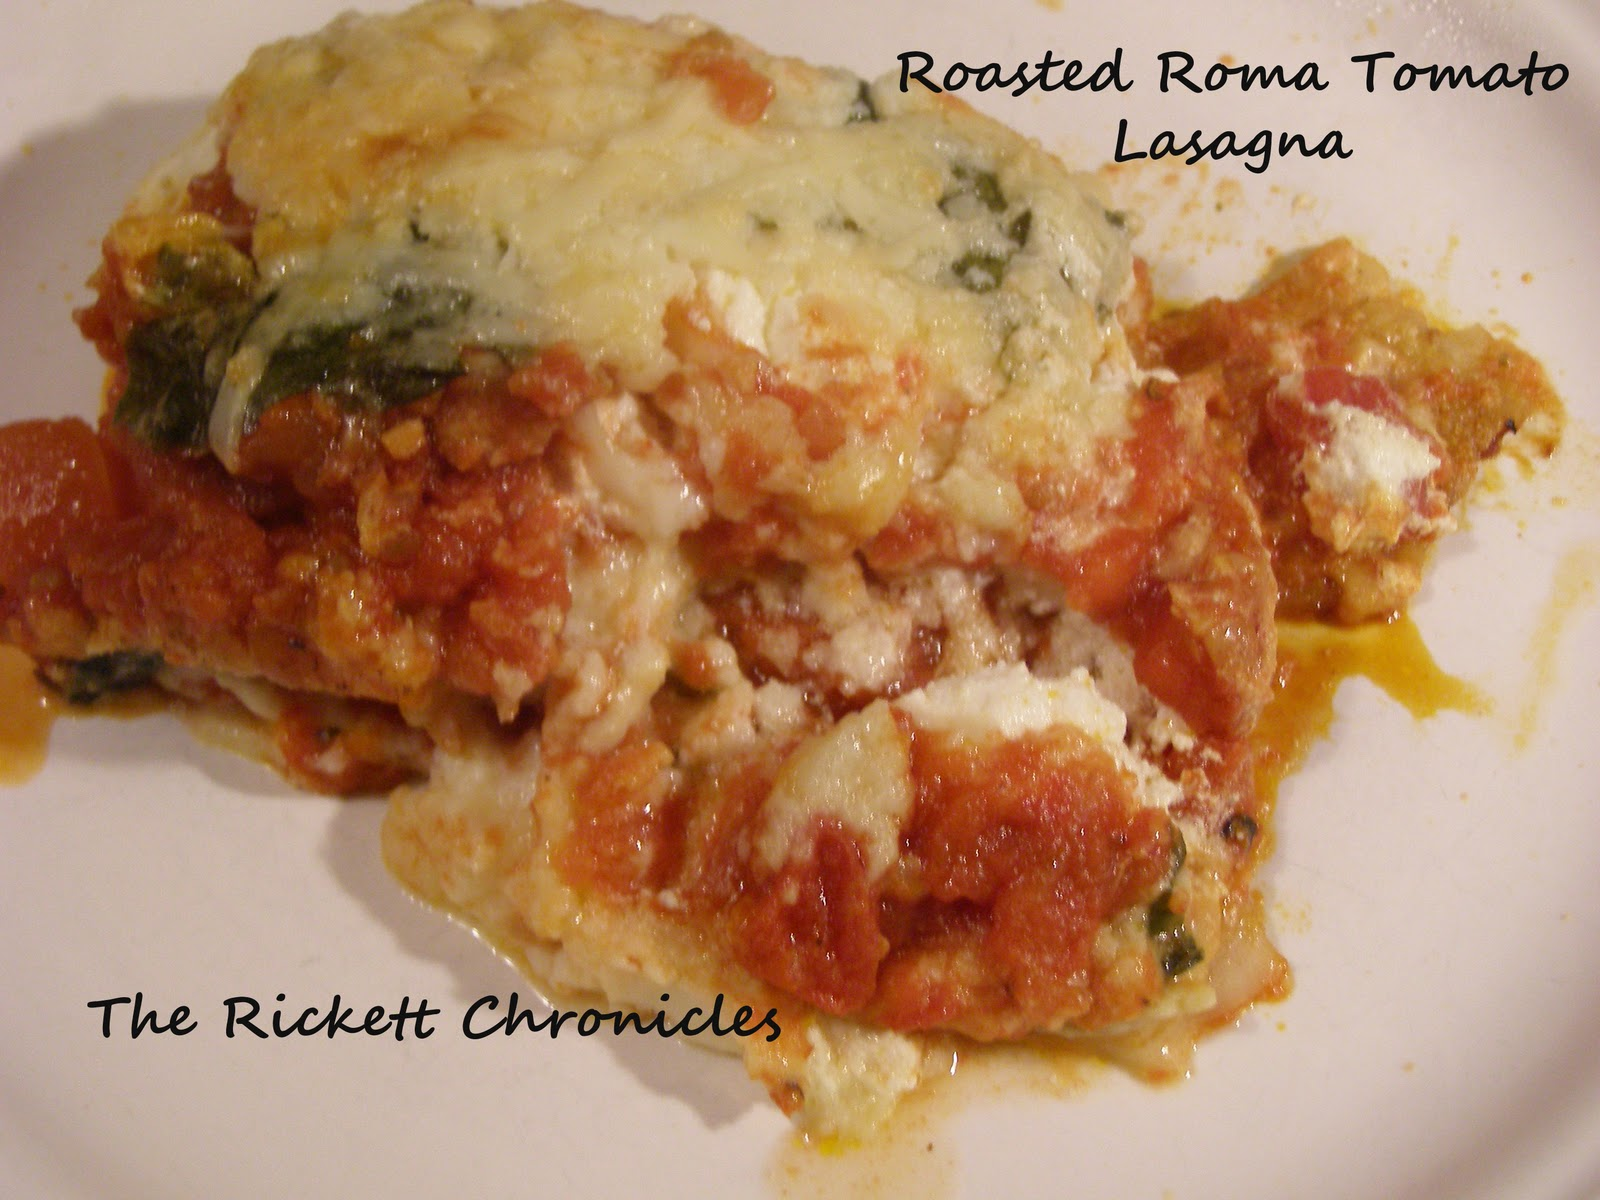 lasagna napoleons spinach and roasted red pepper lasagna roasted ...